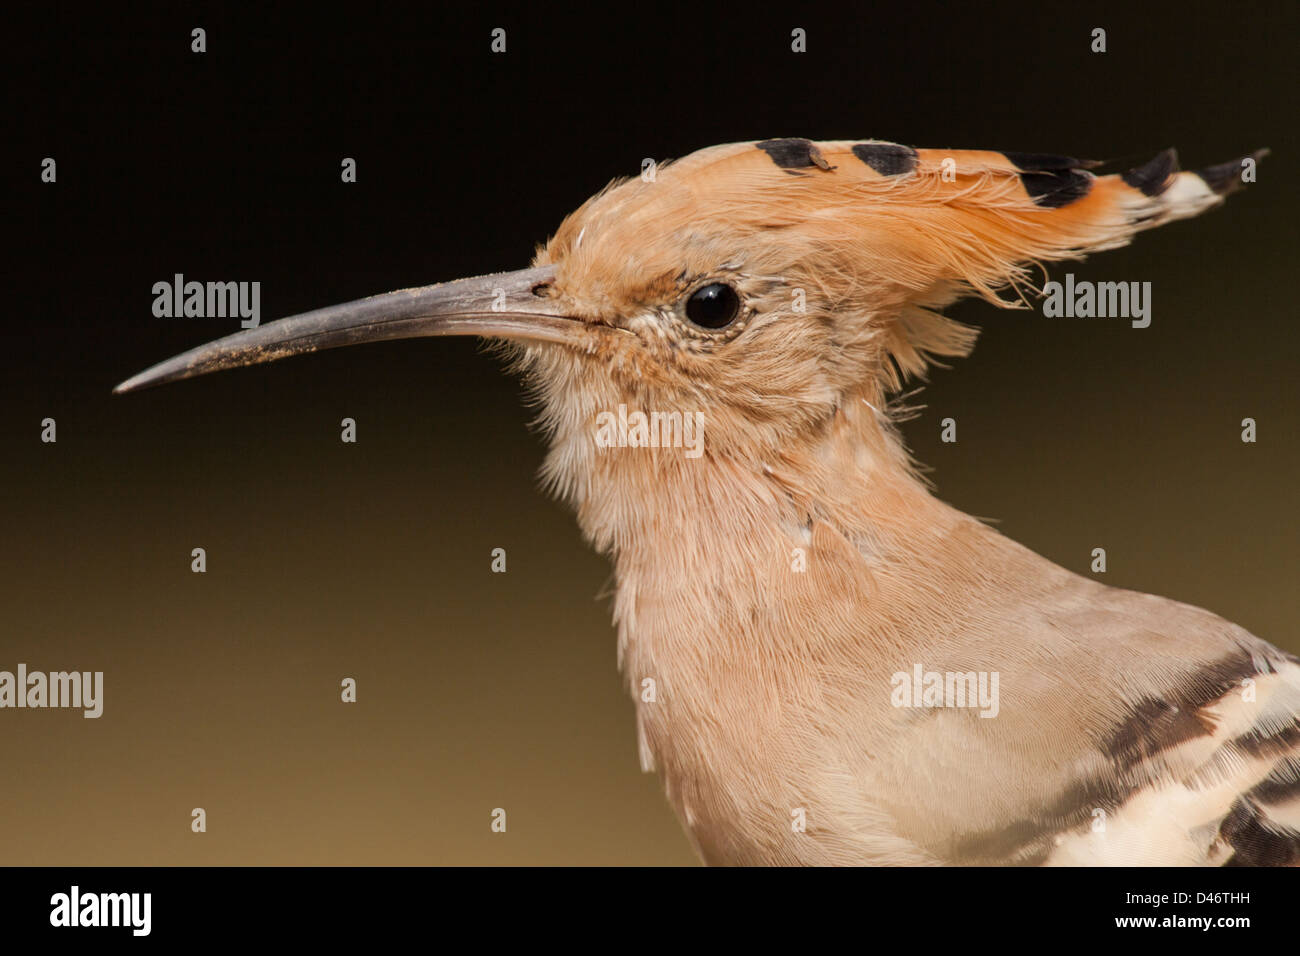 A Closeup portrait of Hoopoe Upupa epops with clean background in Keoladeo Ghana Bird Sanctuary, Bharatpur, India - Stock Image